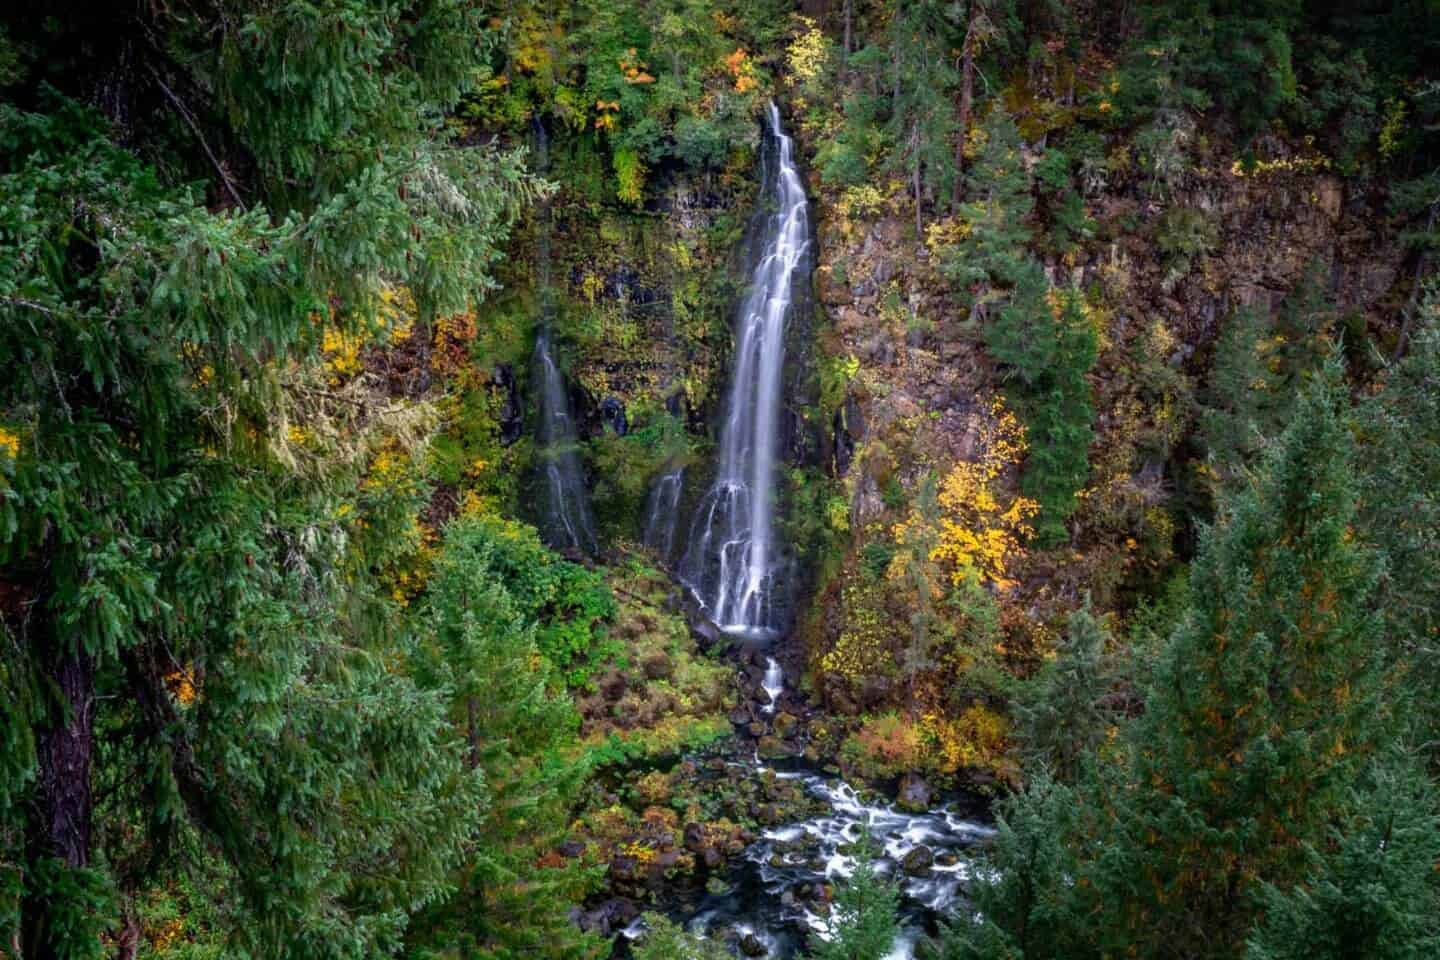 Barr Creek Falls in the Fall, as seen from the Prospect State Scenic Viewpoint.